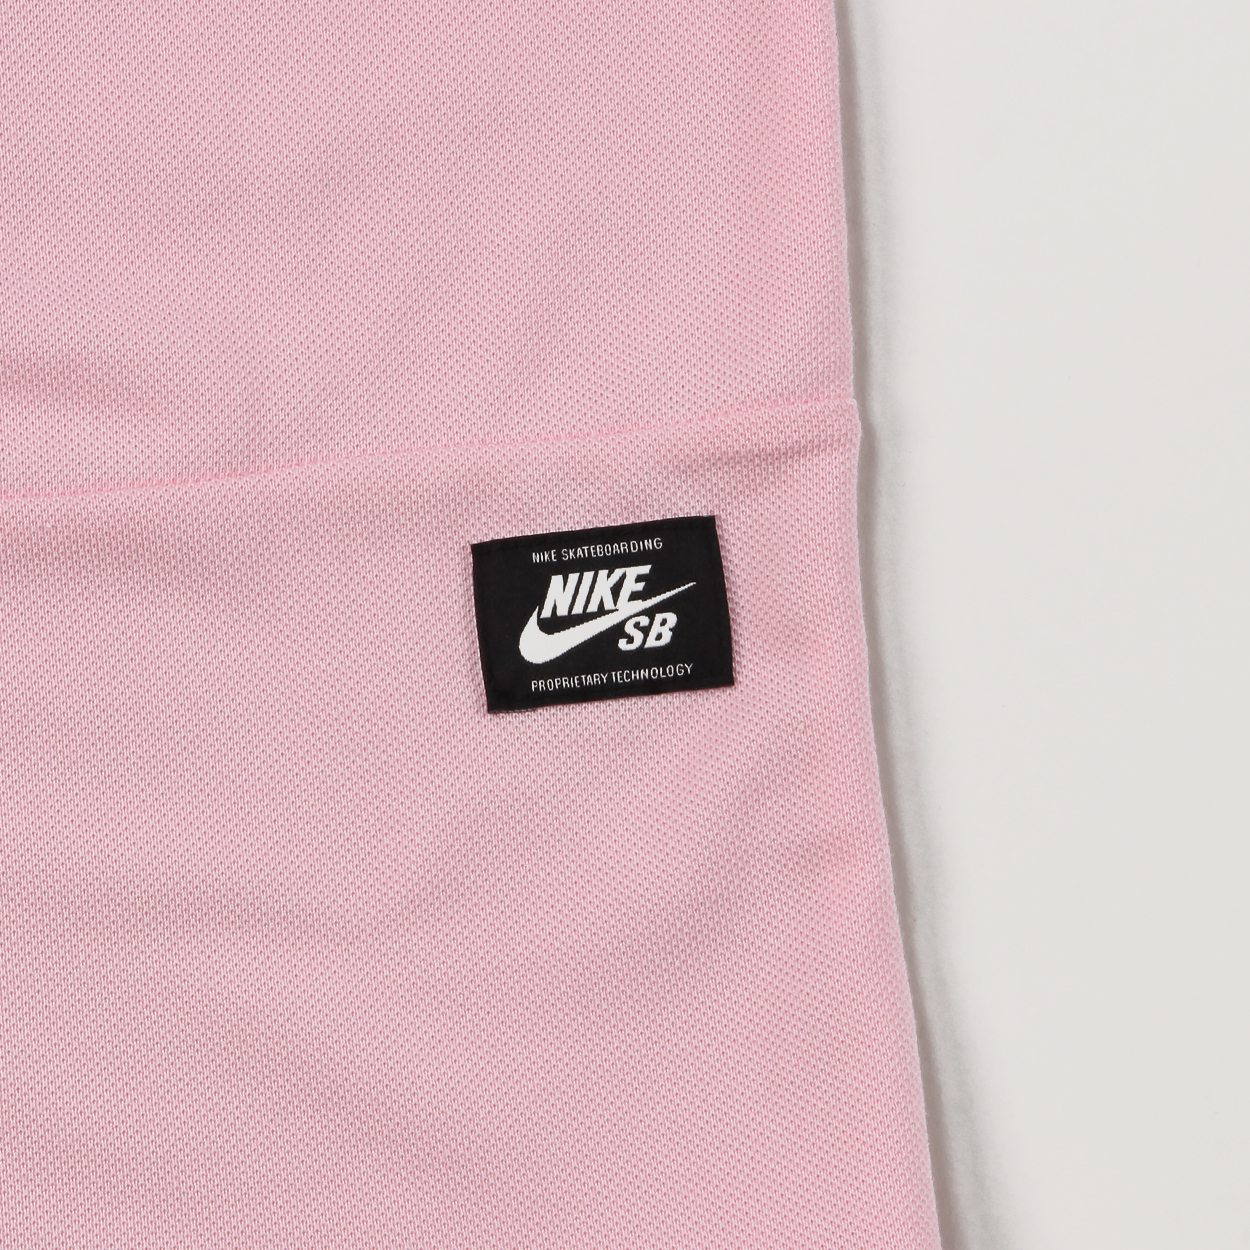 A polo shirt from Nike SB made with dri-FIT technology cotton in a  pique-woven style. It features an embroidered logo to the chest with  ventilation holes ... 02c741e6447